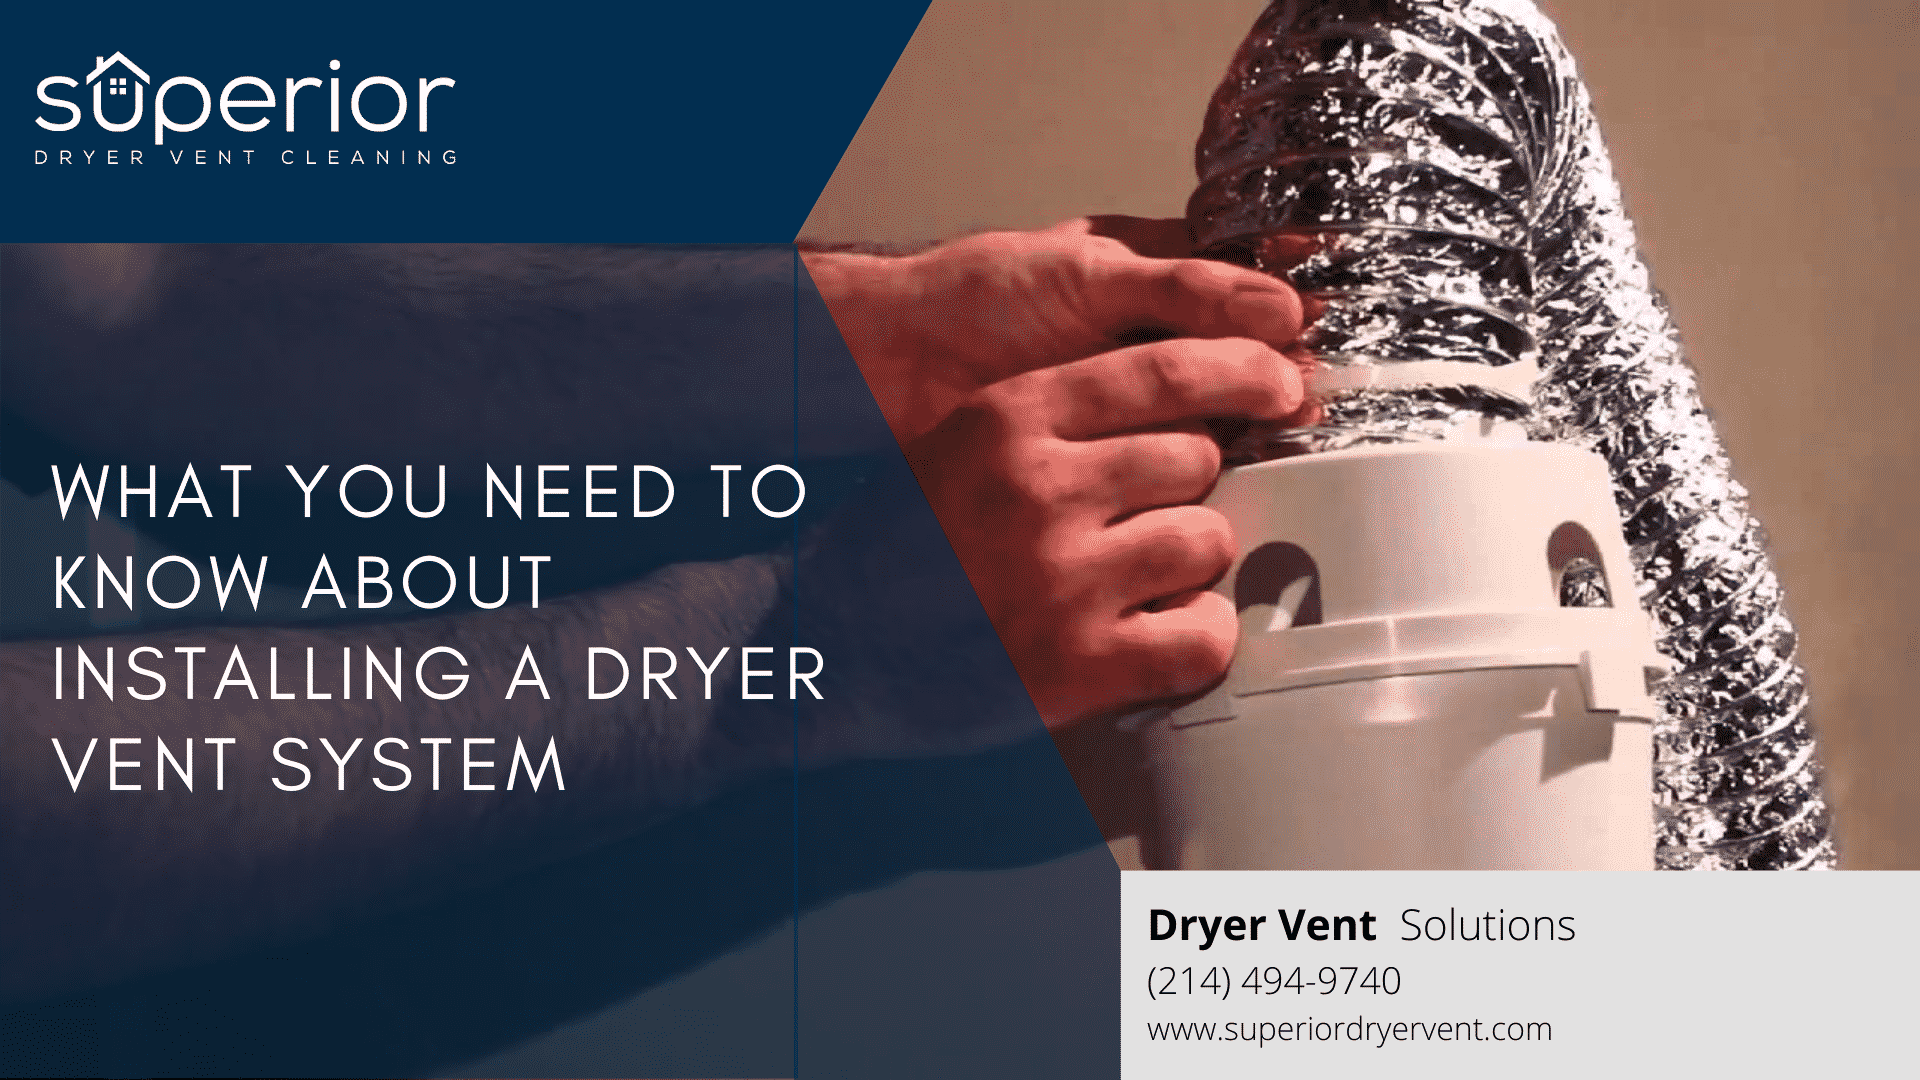 What You Need to Know About Installing a Dryer Vent System